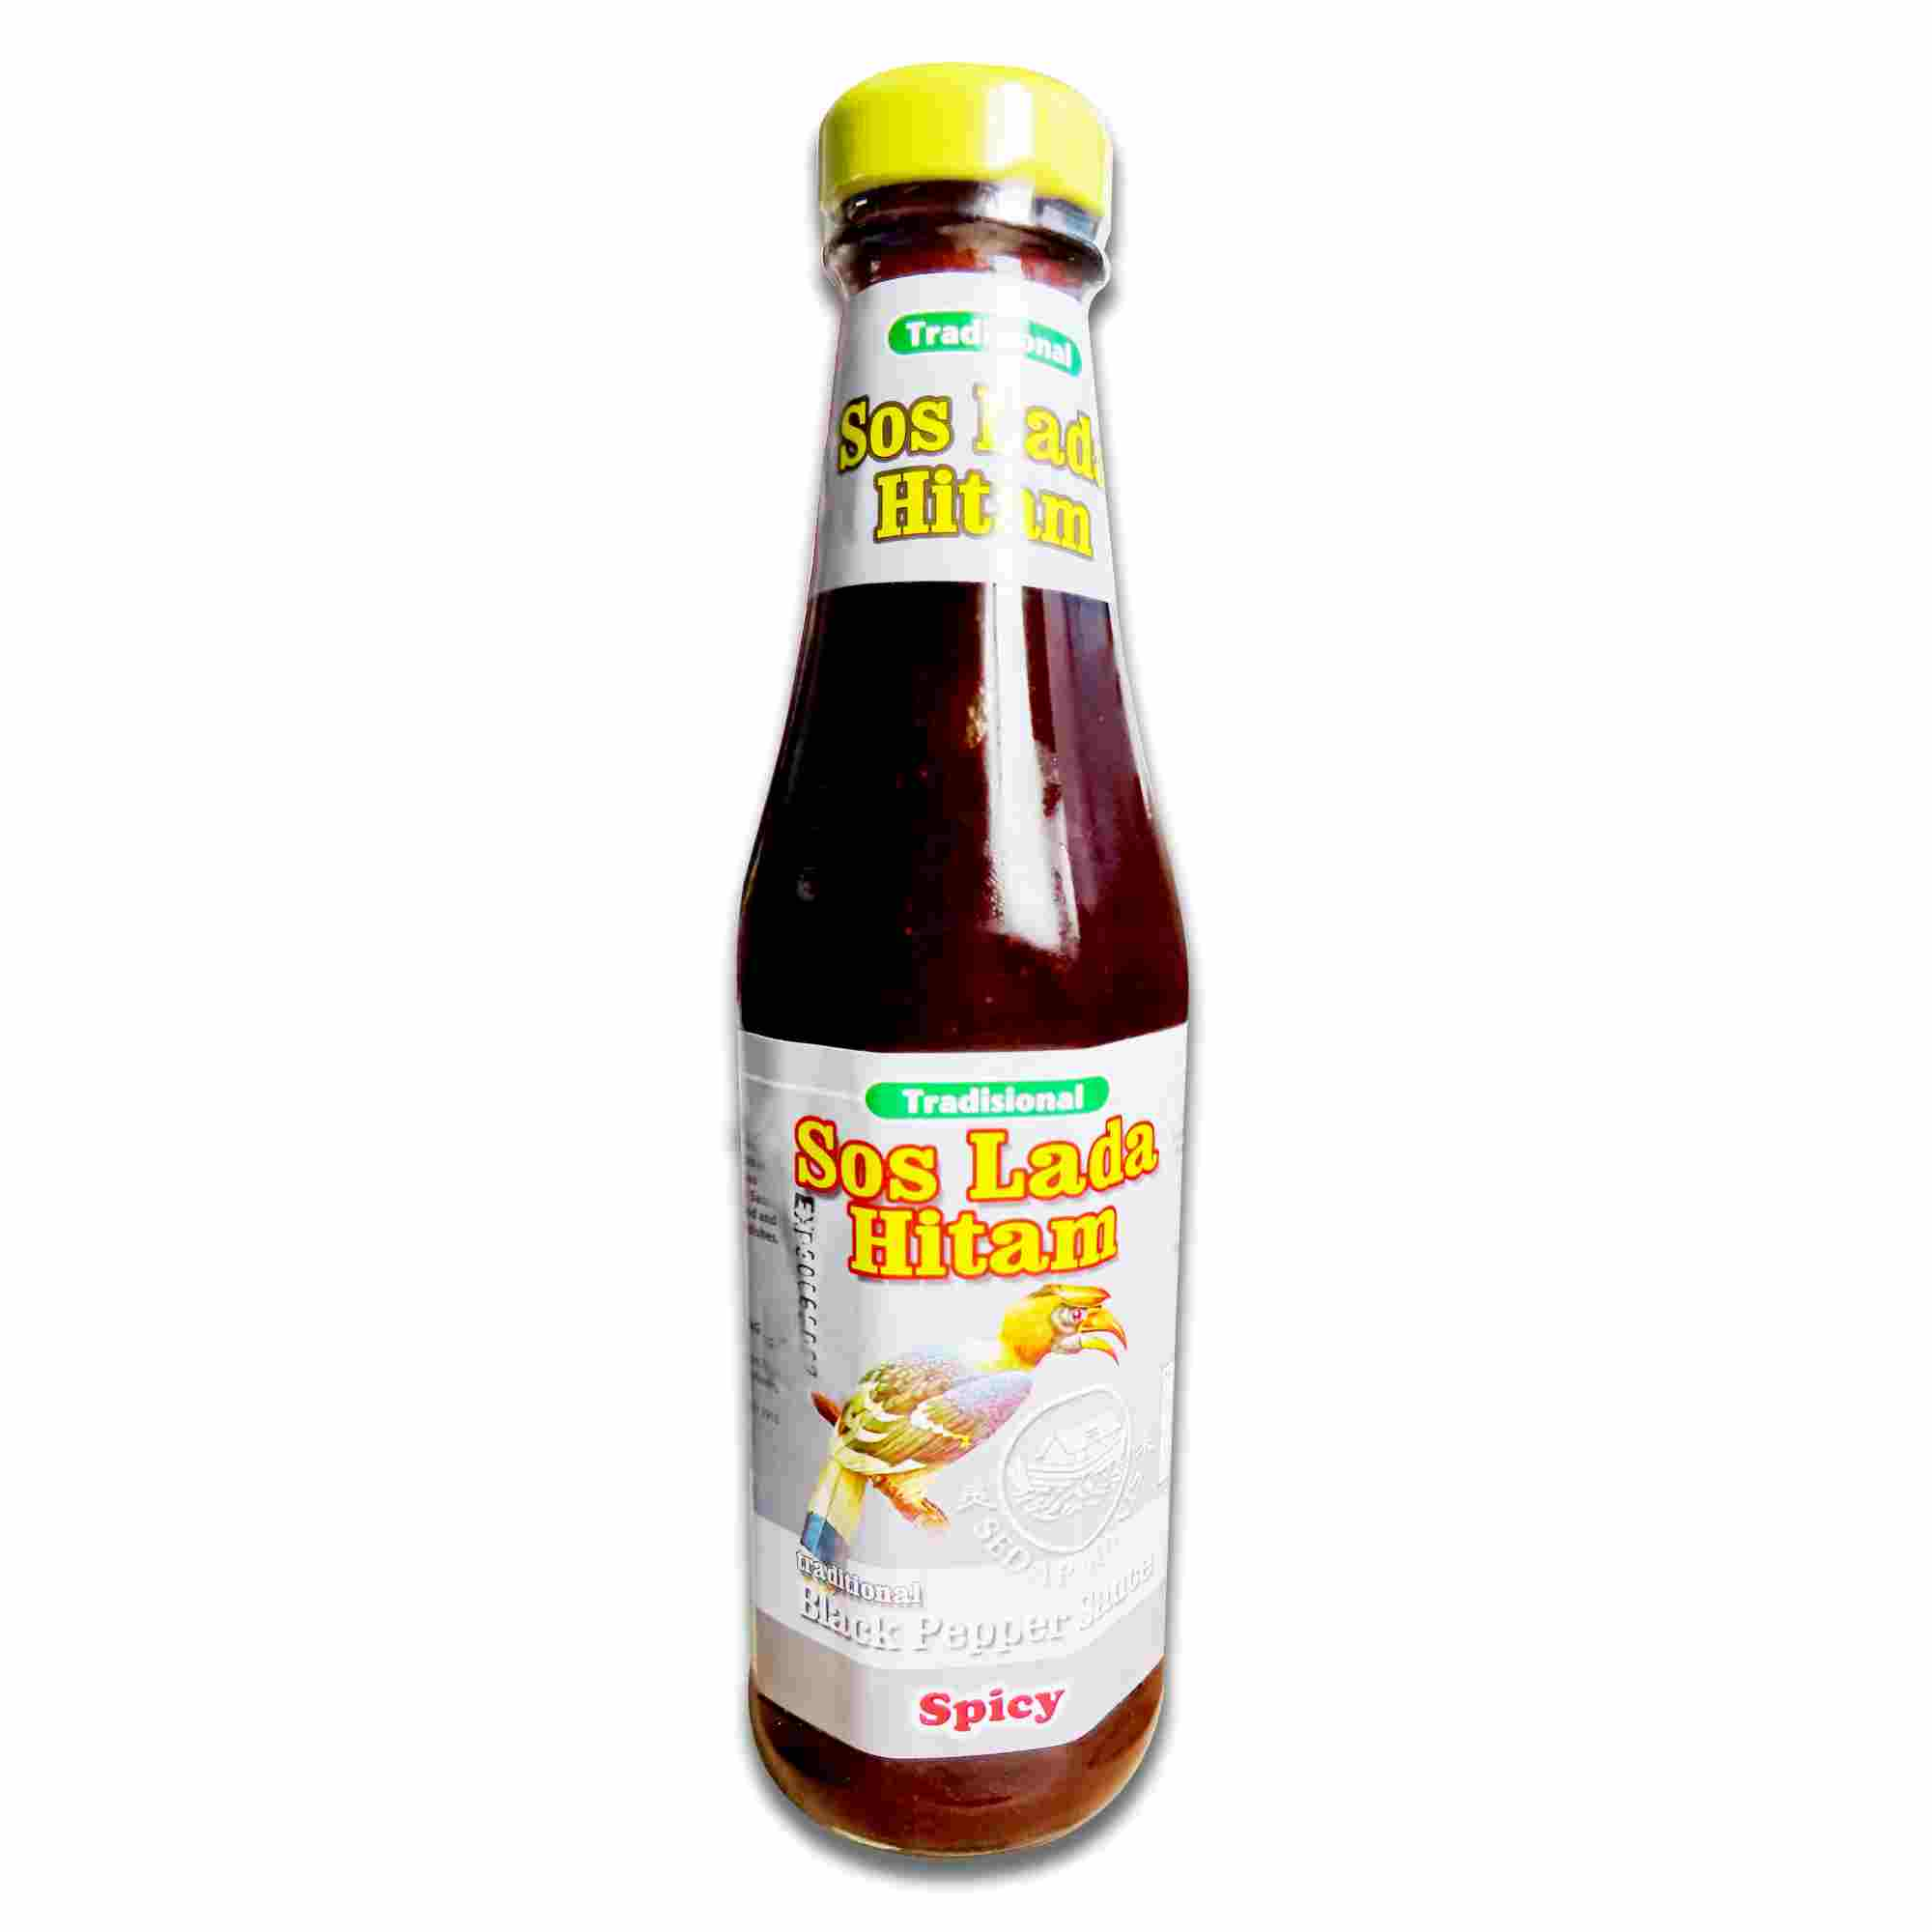 Image Traditional Spicy Black Pepper Sauce 传统(辣)黑胡椒酱 340 grams